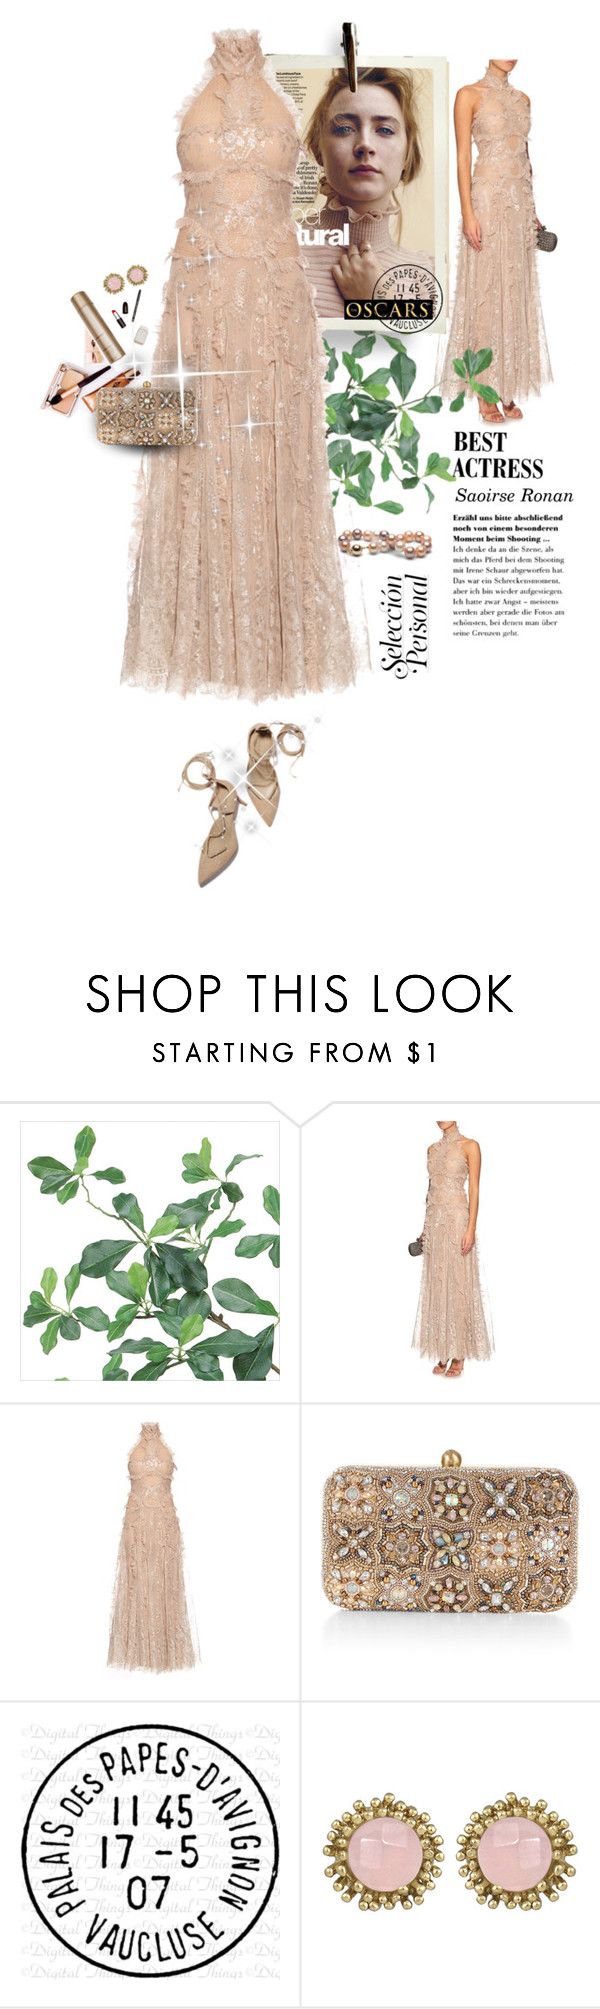 """""""Oscar"""" by sibanesly ❤ liked on Polyvore featuring мода, Alexander McQueen, DuÅ¡an, Charlotte Tilbury, Accessorize, Avignon, Kendra Scott и oscarfashion"""